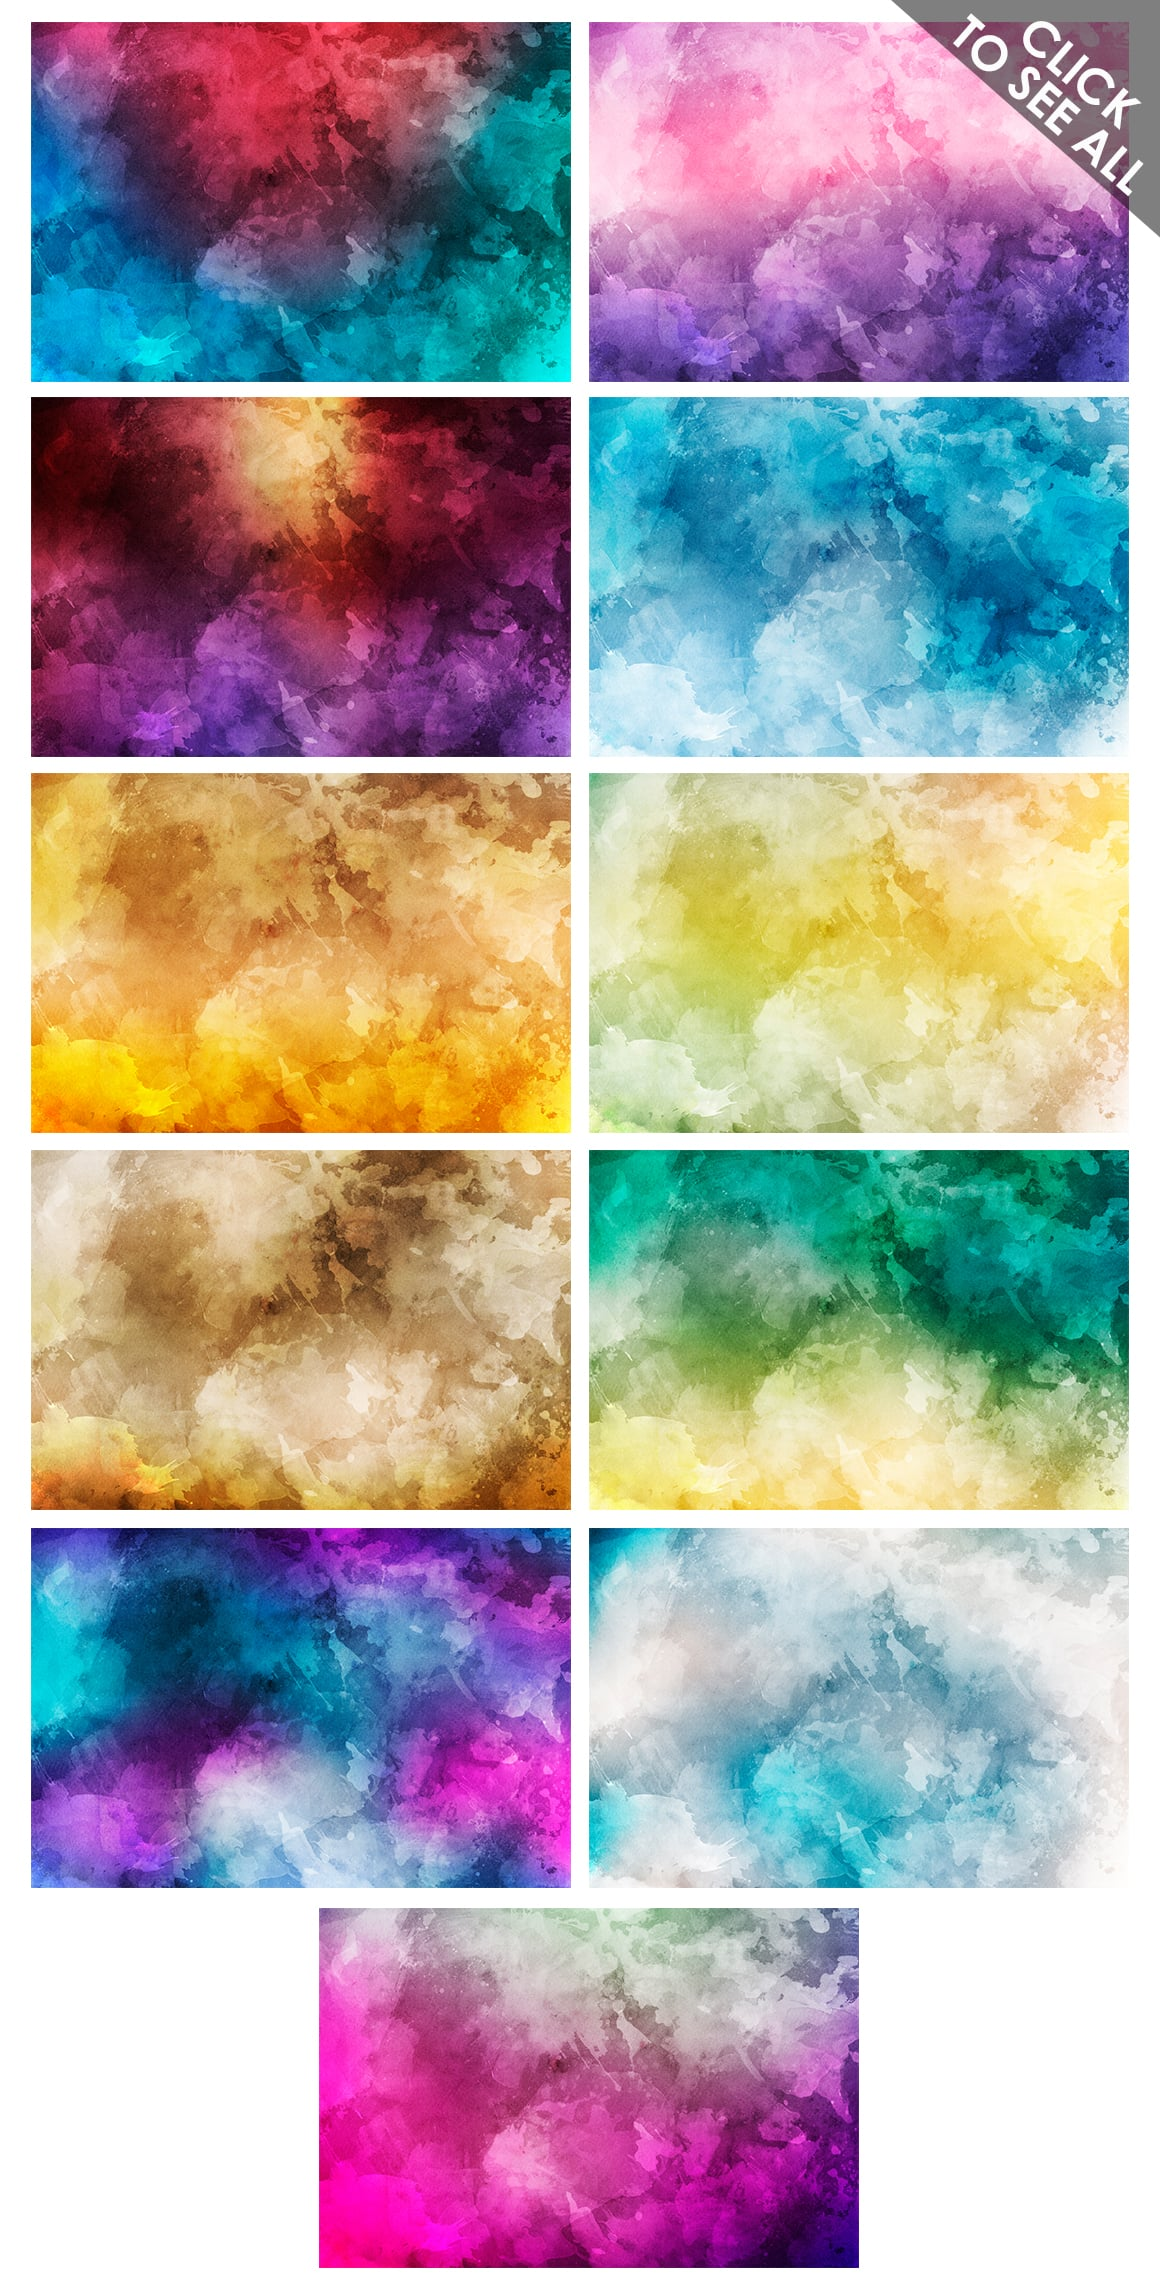 540+ Watercolor Backgrounds Bundle - 544 Items. Only $18! - watercolor backgrounds prev 2 o1